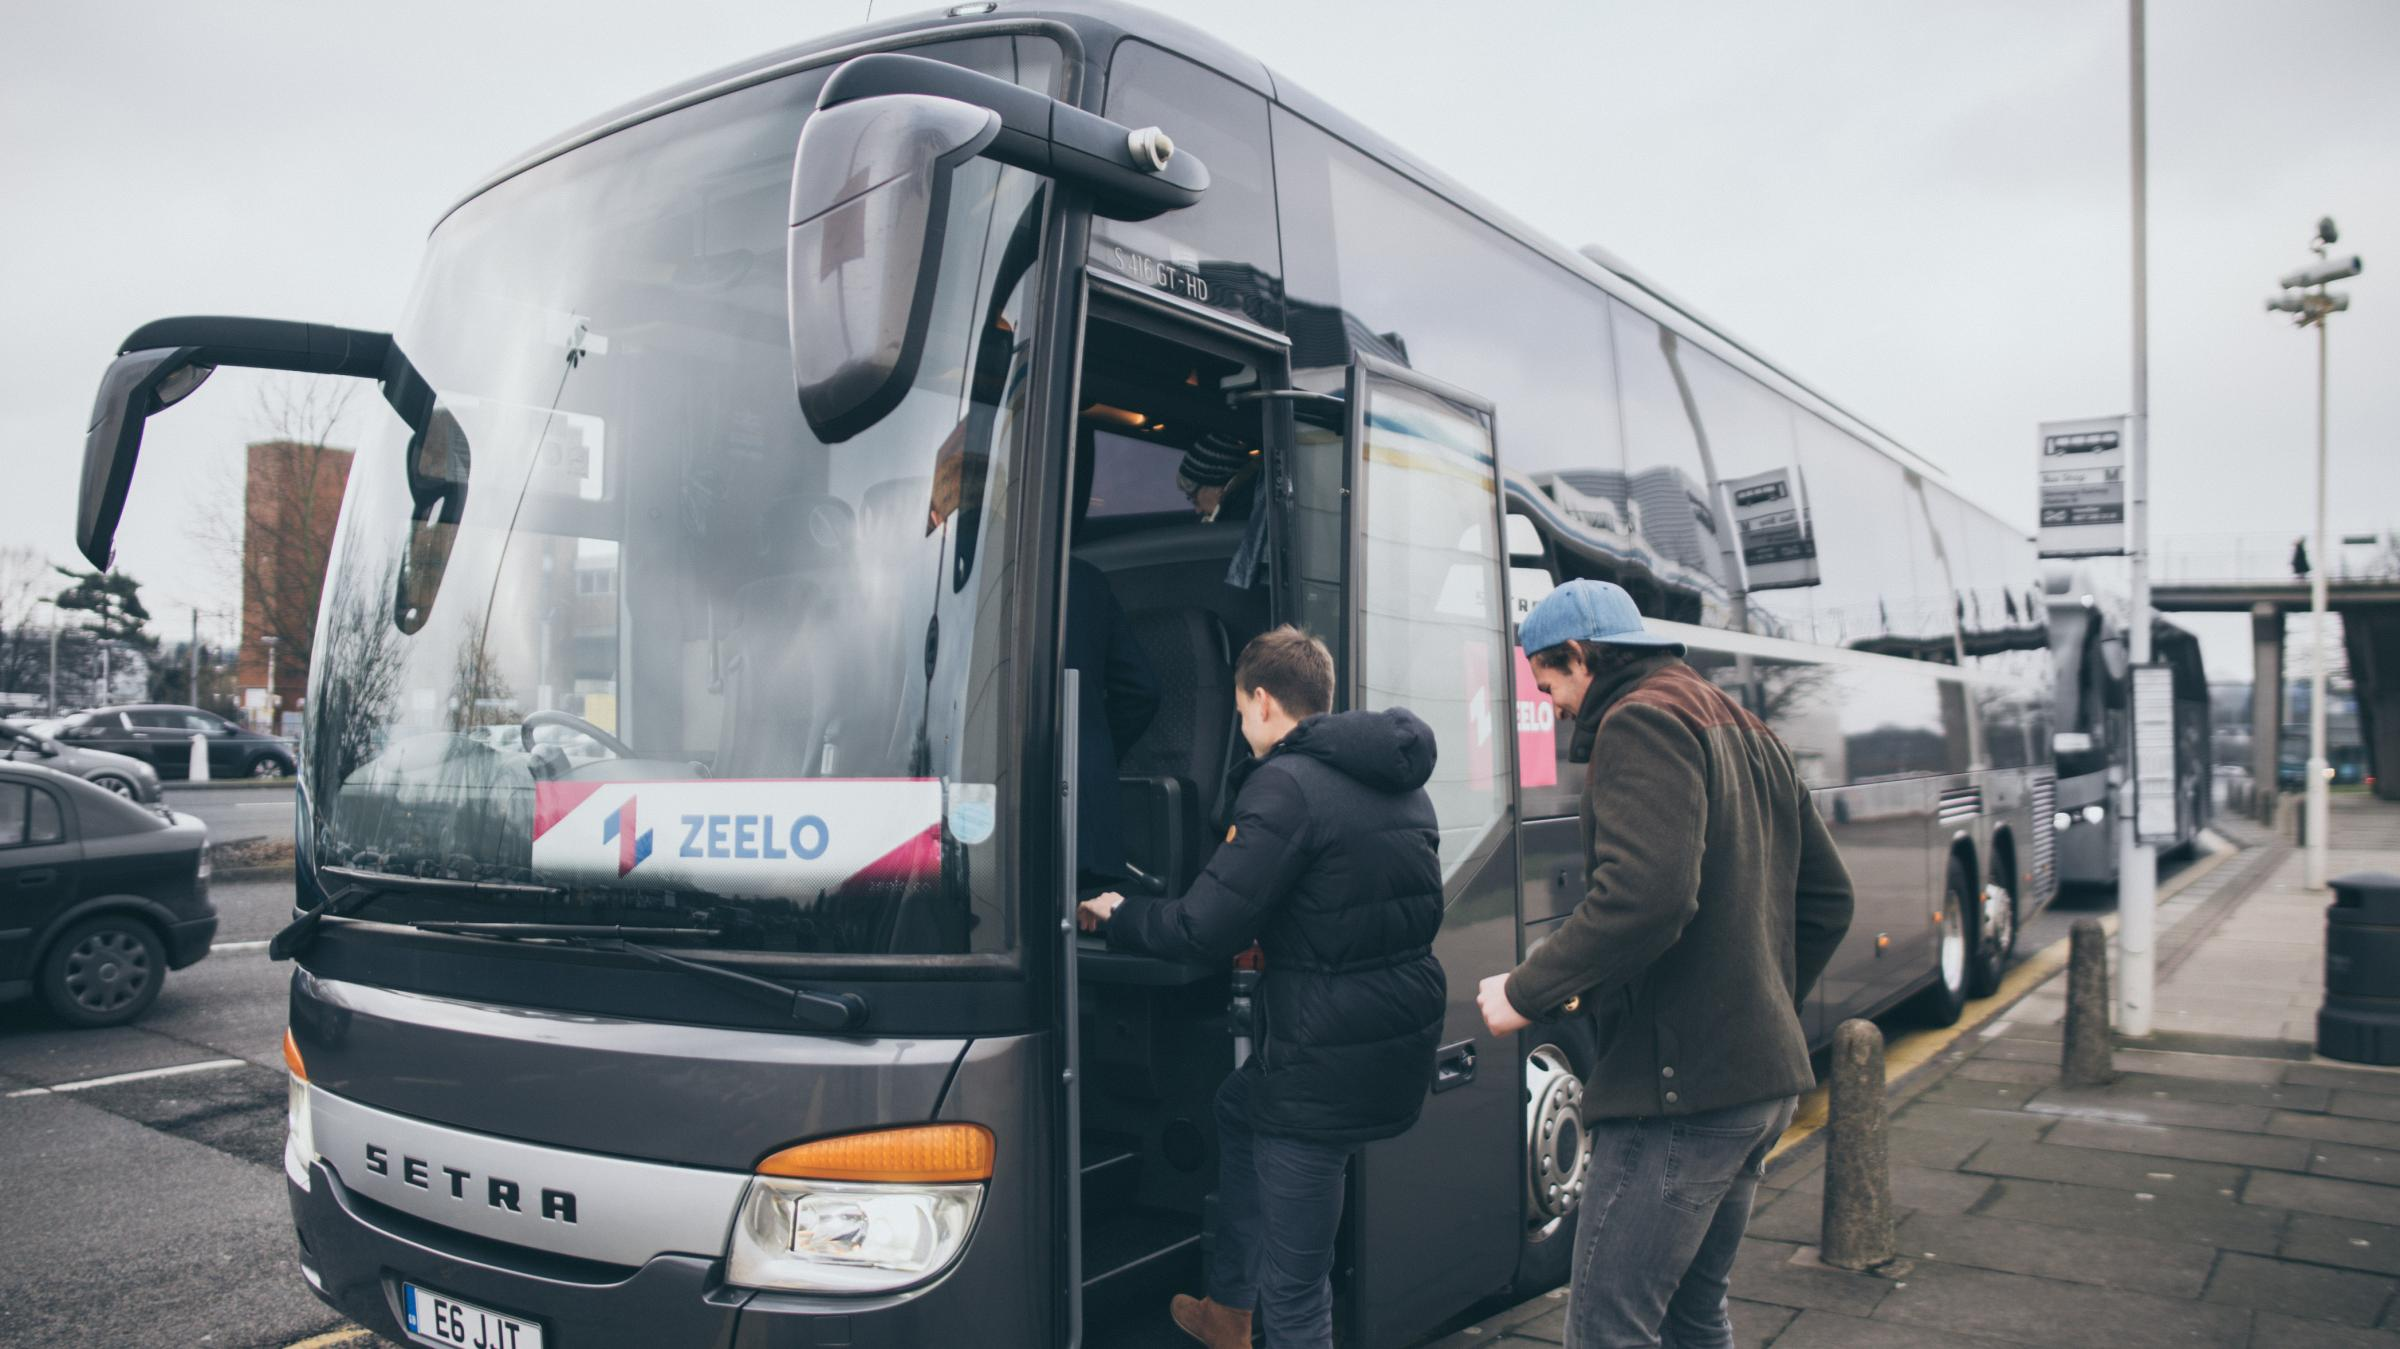 Zeelo are offering free coach travel for Aston Villa fans from points around the region for Saturday's home tie with Wigan Athletic.